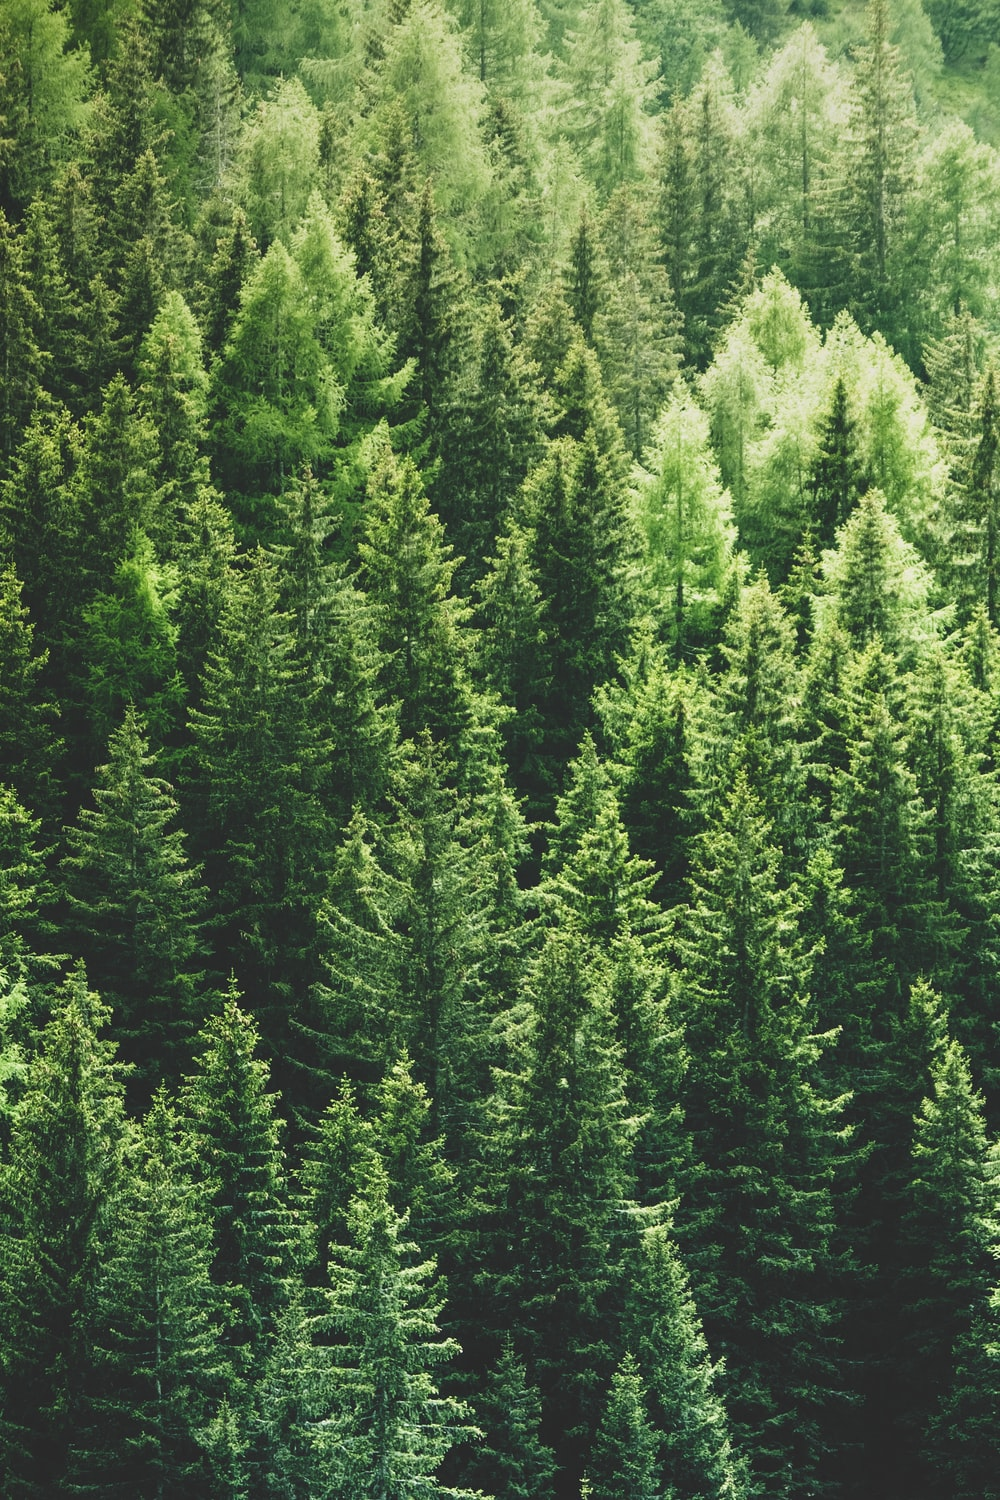 green pine trees in forrest